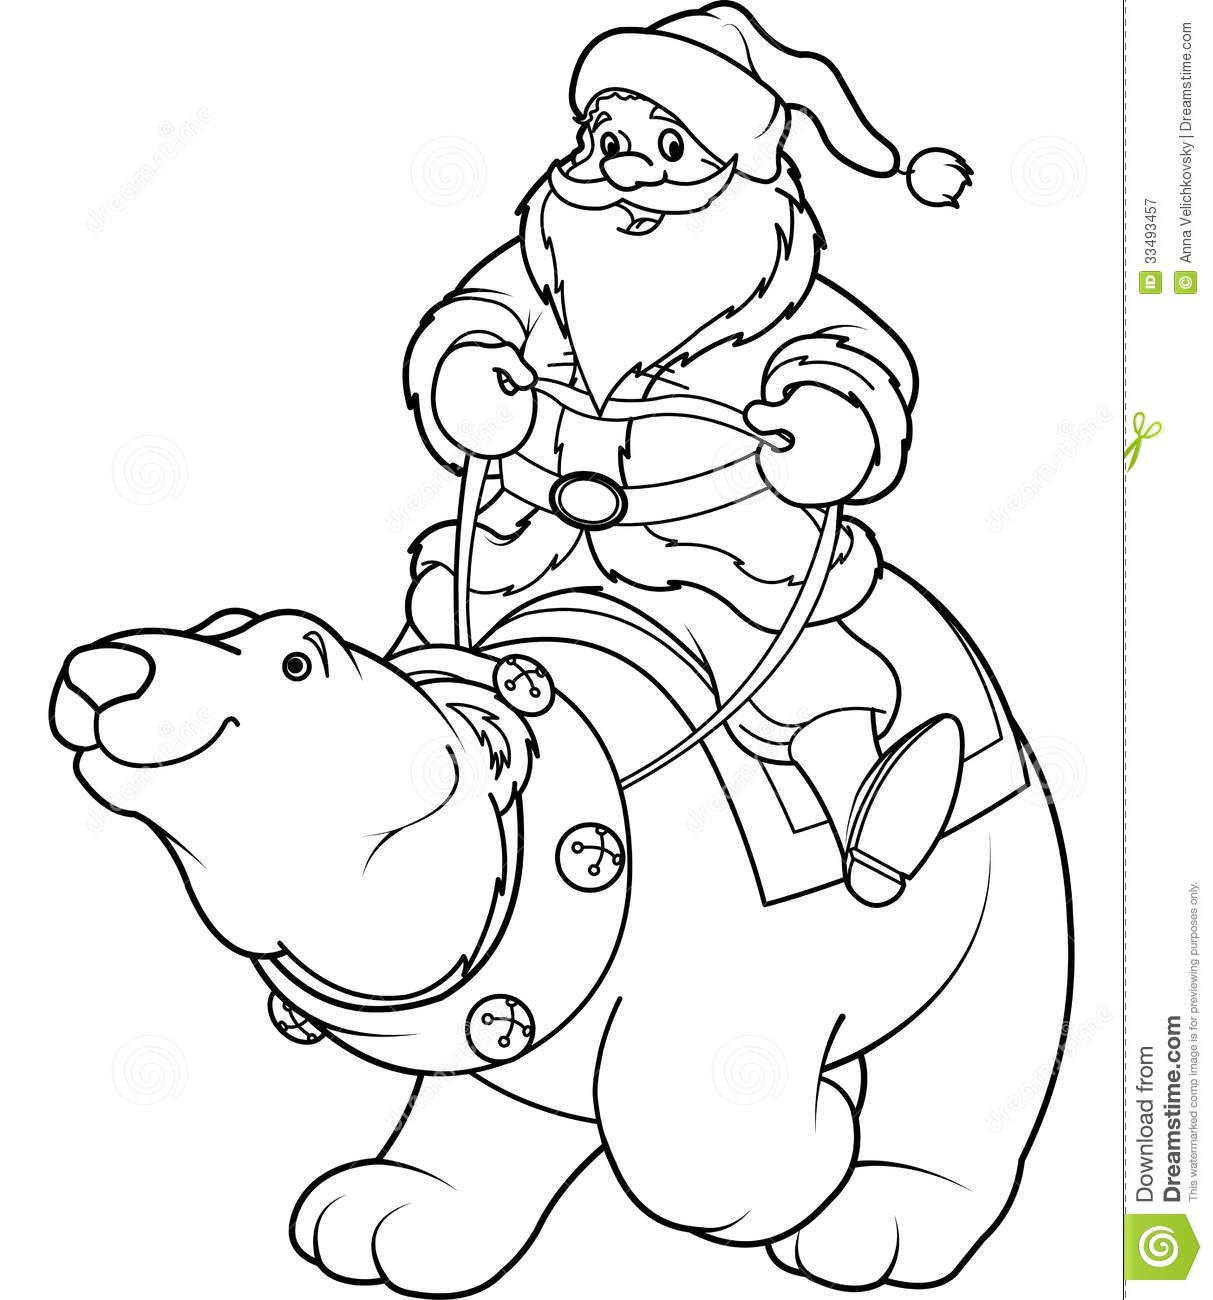 santa claus riding on polar bear coloring page royalty free stock